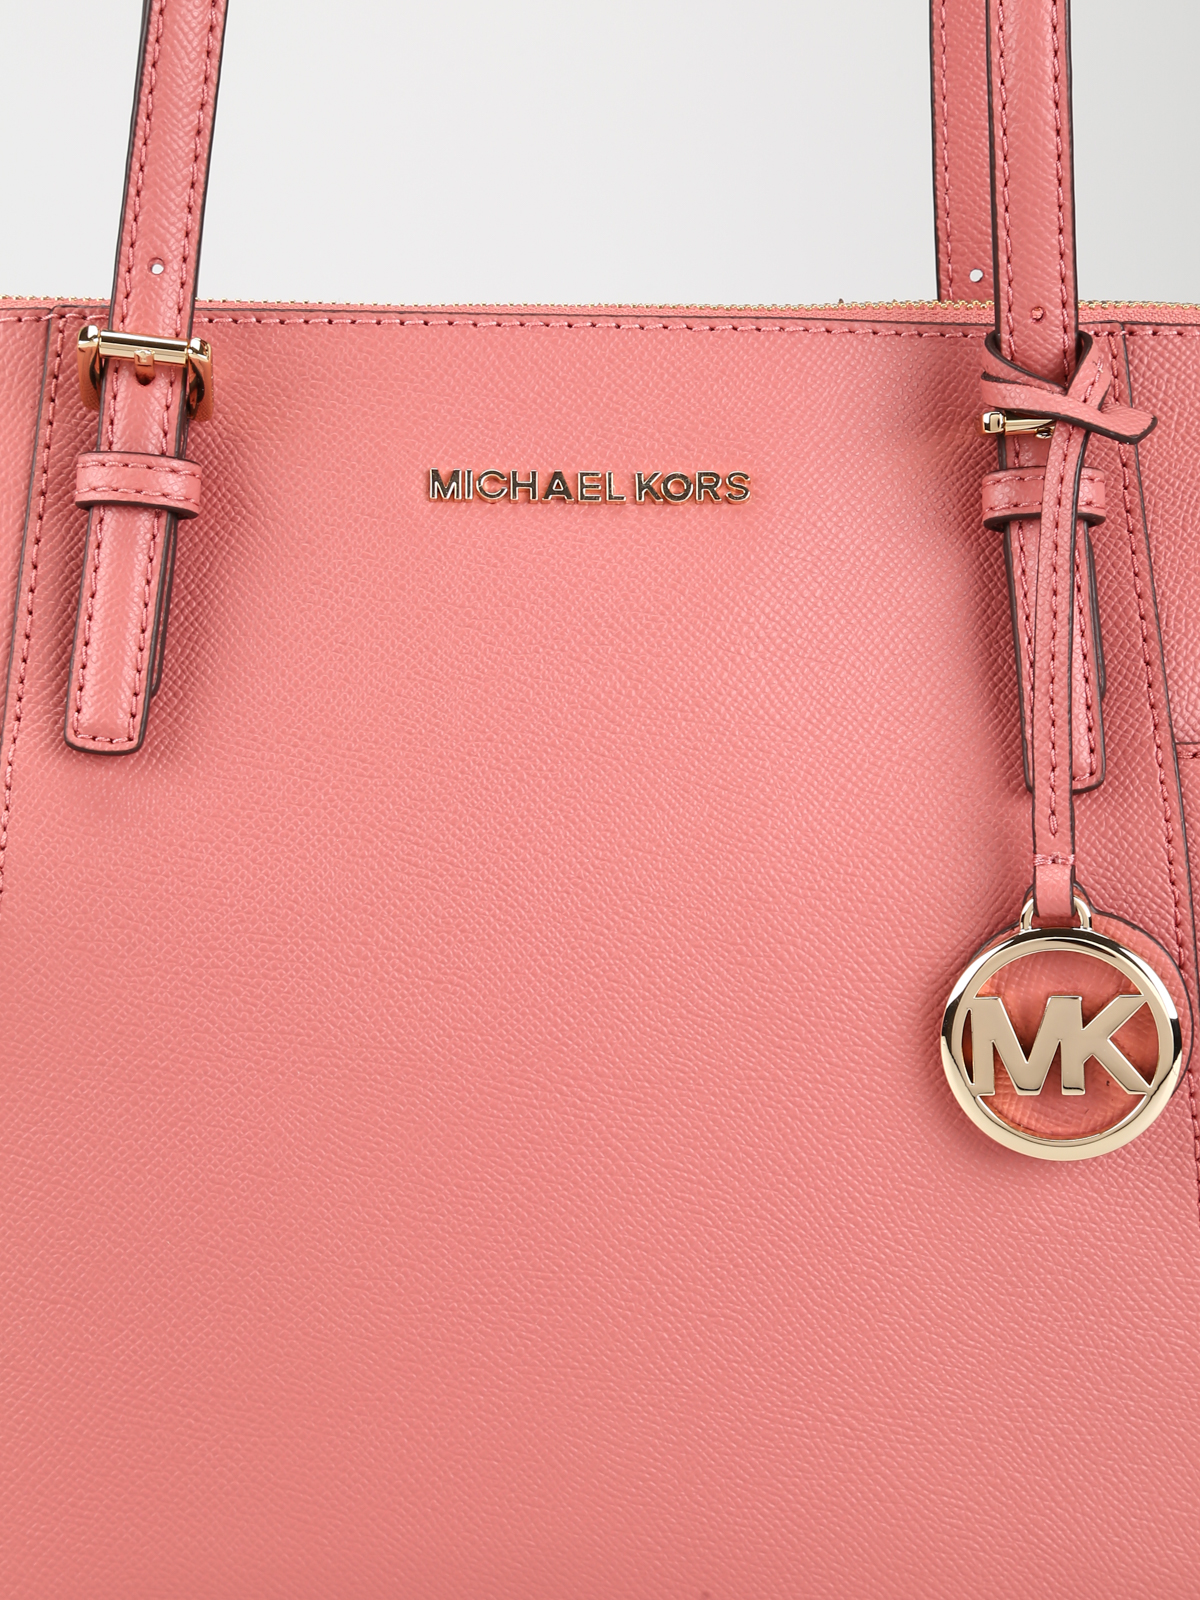 96e2a74080102f Michael Kors - Jet Set top zip rose leather tote - totes bags ...